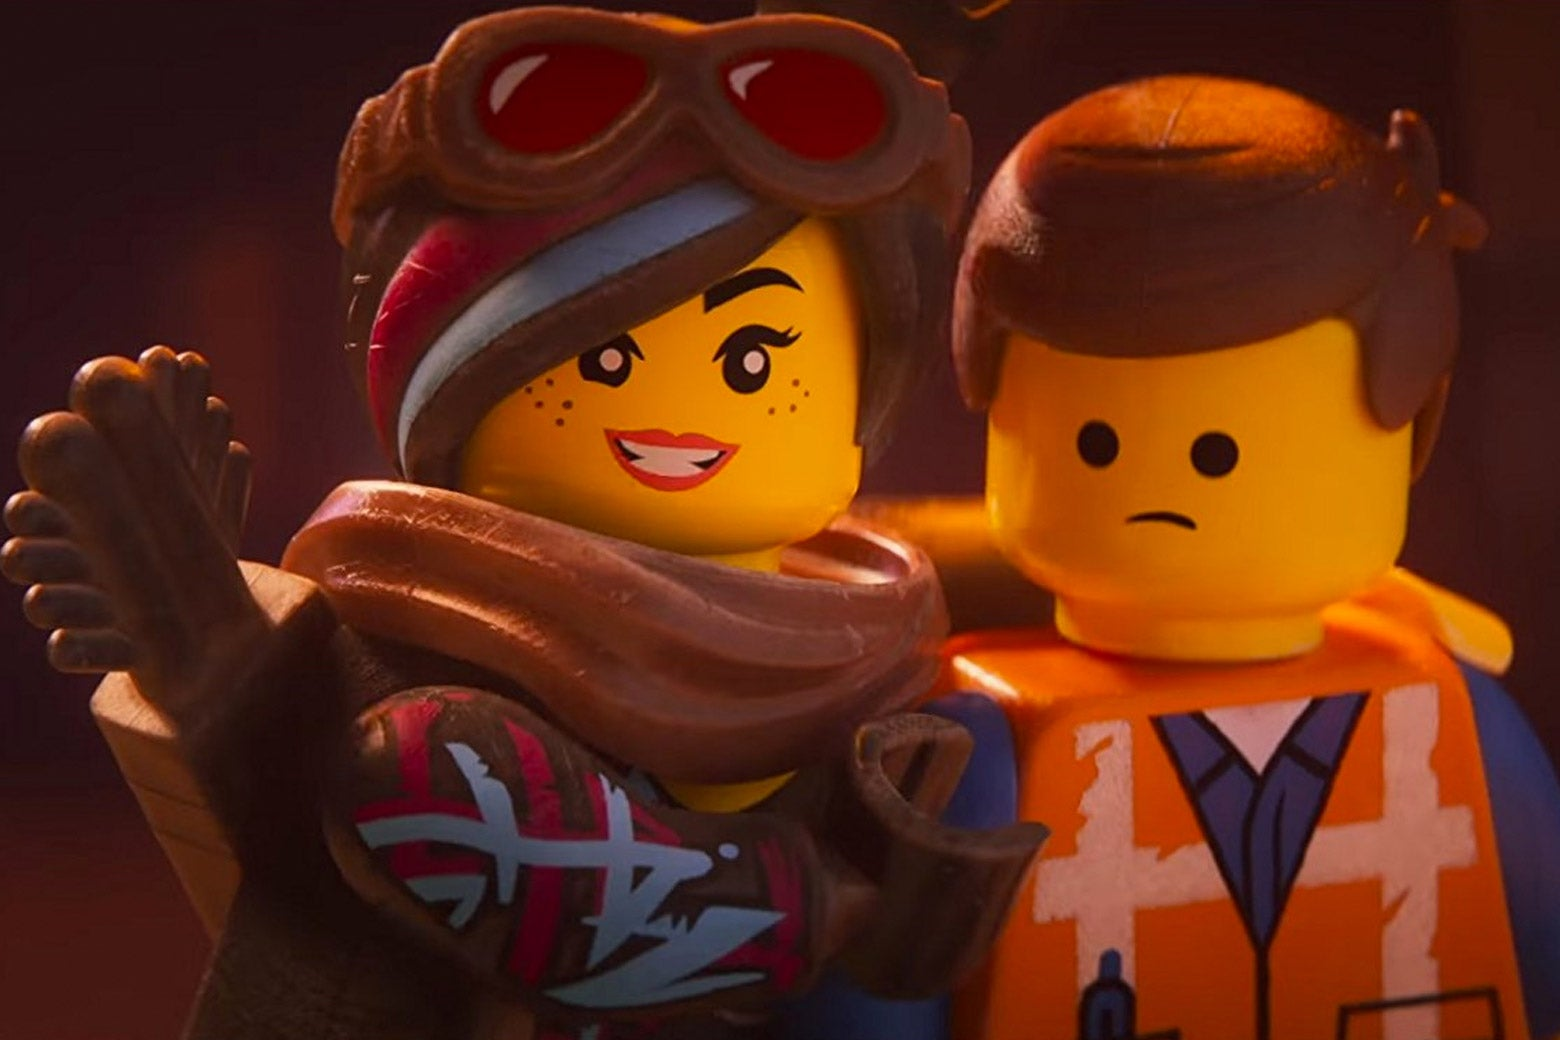 The Lego figurines Wyldstyle and Emmet.